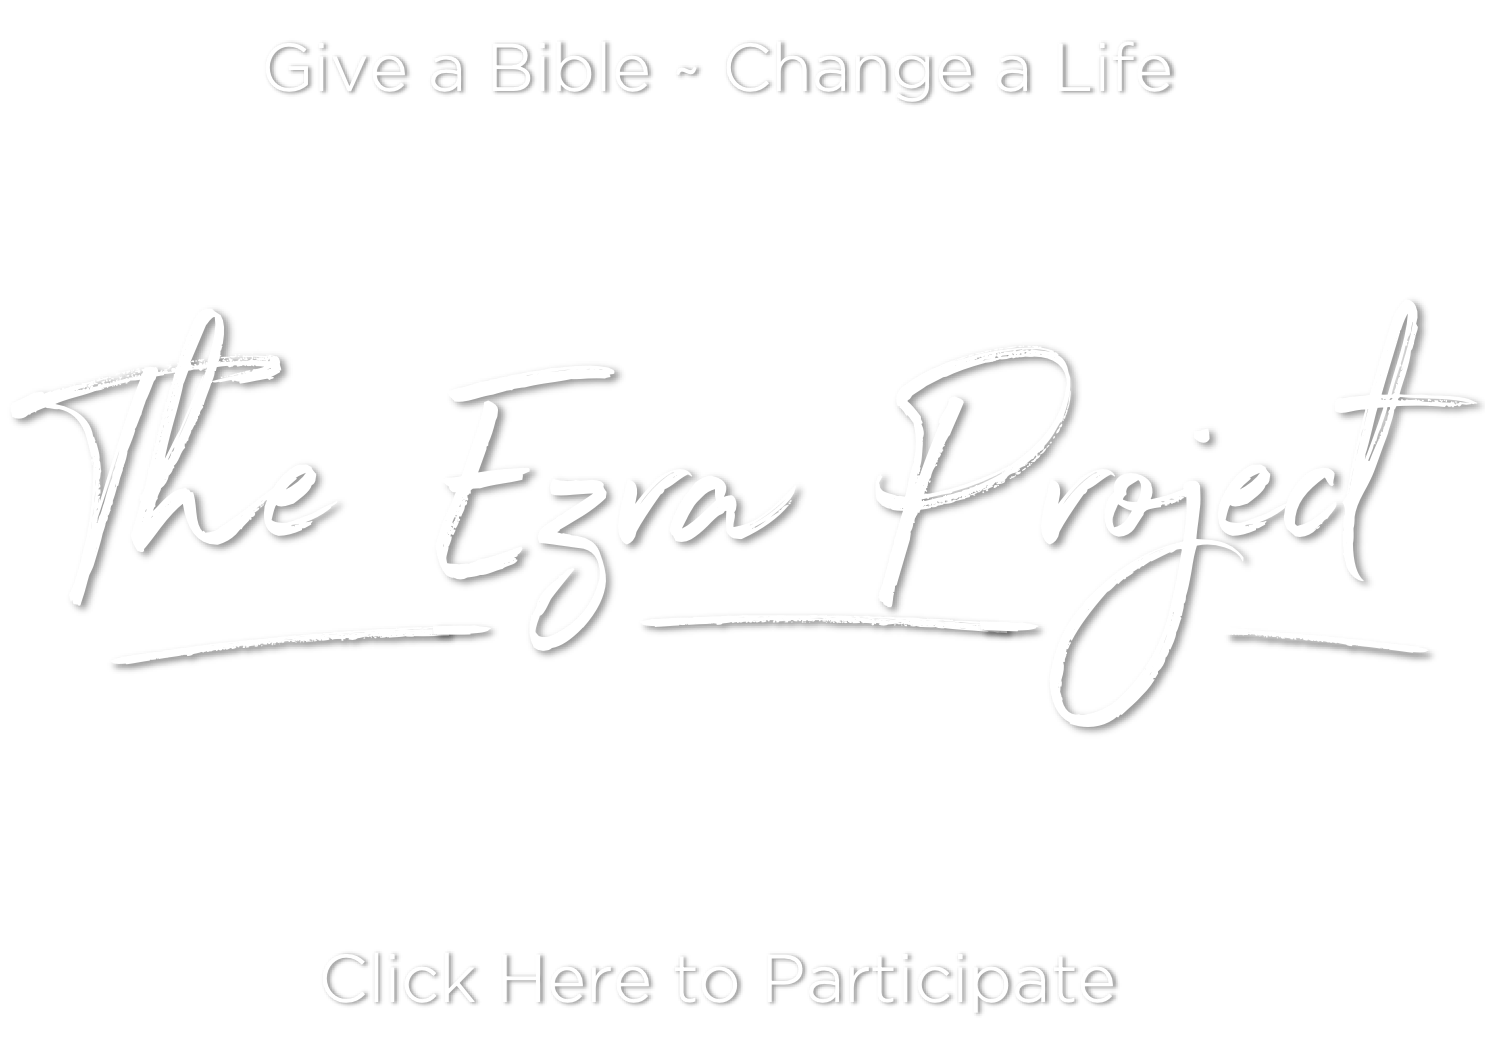 Free Bibles, Church in Carlsbad, Evangelism, Change a life, Save my life